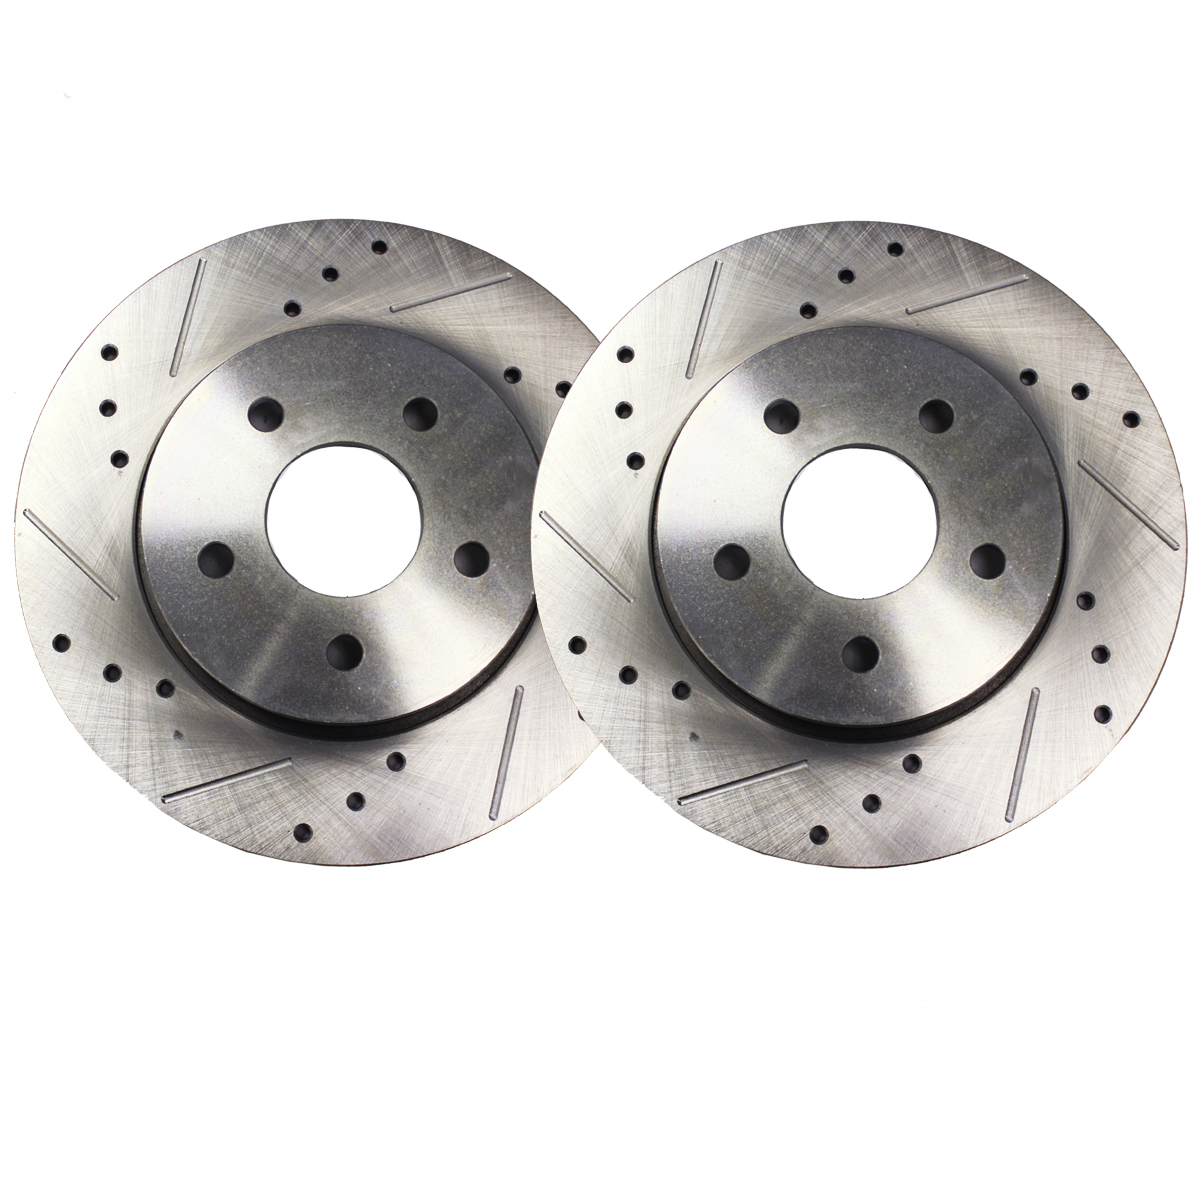 Rear Drilled & Slotted Brake Rotors